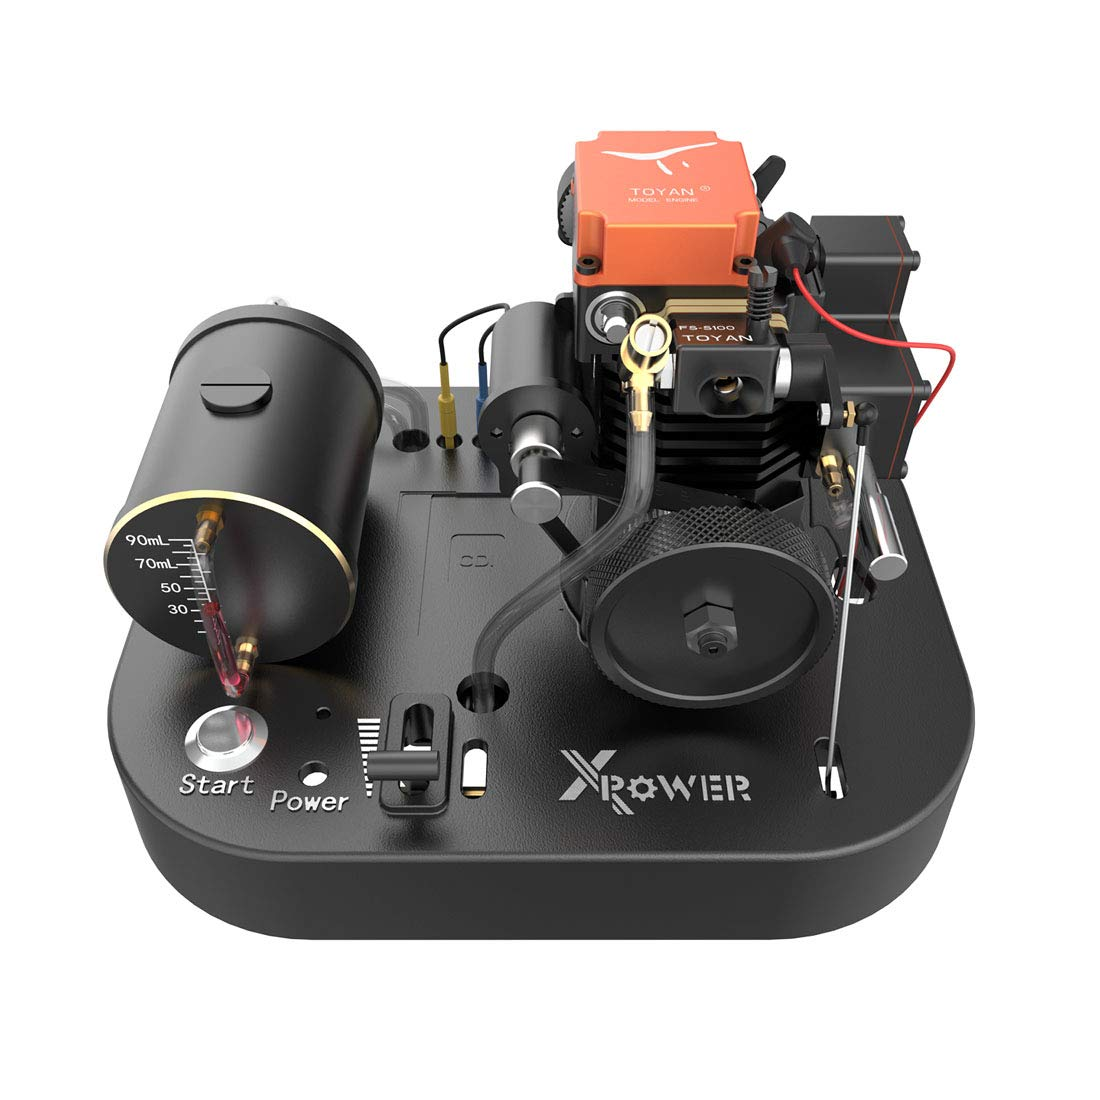 Yamix 4 Stroke Methanol Engine RC Engine Toyan Engine DIY Engine Motor with Base Fuel Tank Throttle Push Rod Set for 1:10 1:12 1:14 RC Car Boat Airplane (FS-S100AS)